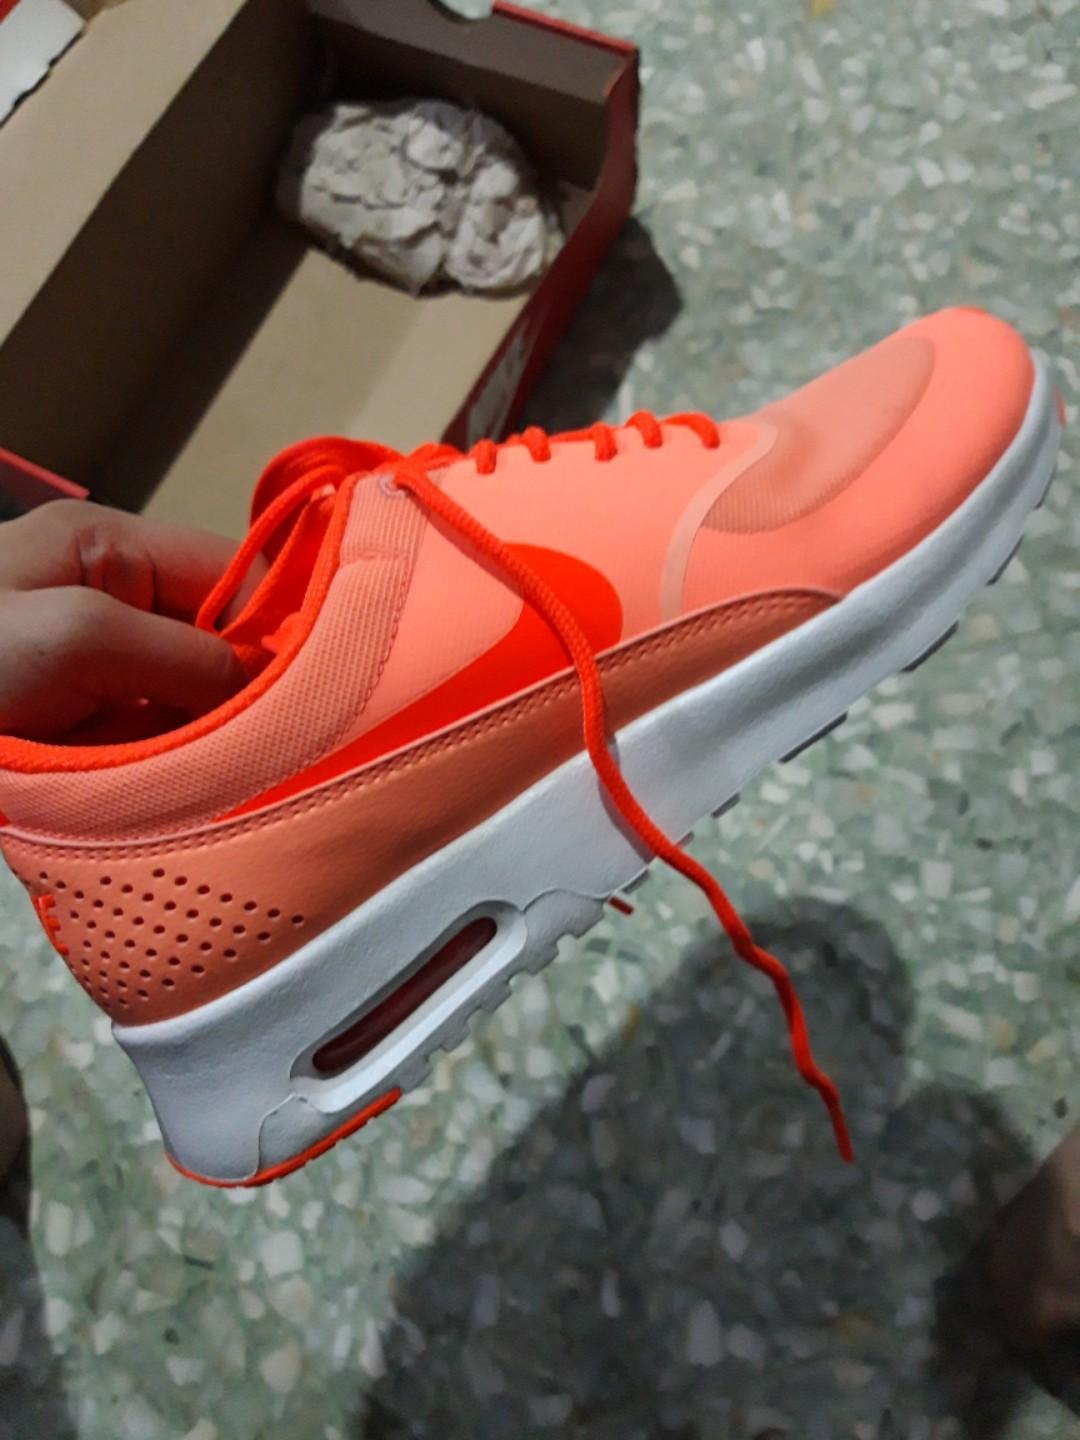 best supplier affordable price exquisite style Nike air max thea atomic pink, Women's Fashion, Women's ...